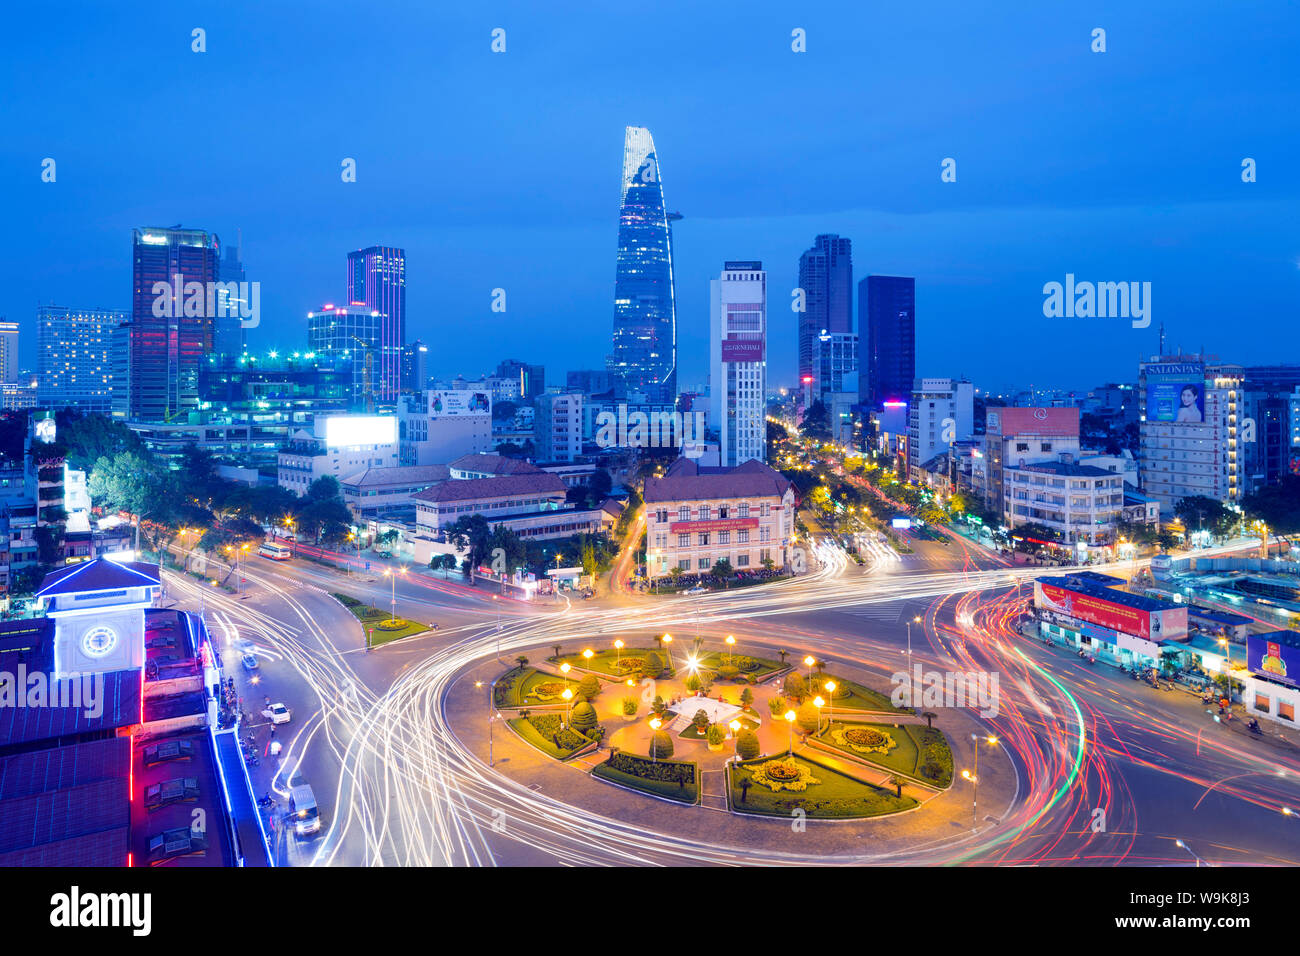 Ben Thanh market area and Bitexco Financial Tower, Ho Chi Minh City (Saigon), Vietnam, Indochina, Southeast Asia, Asia Stock Photo